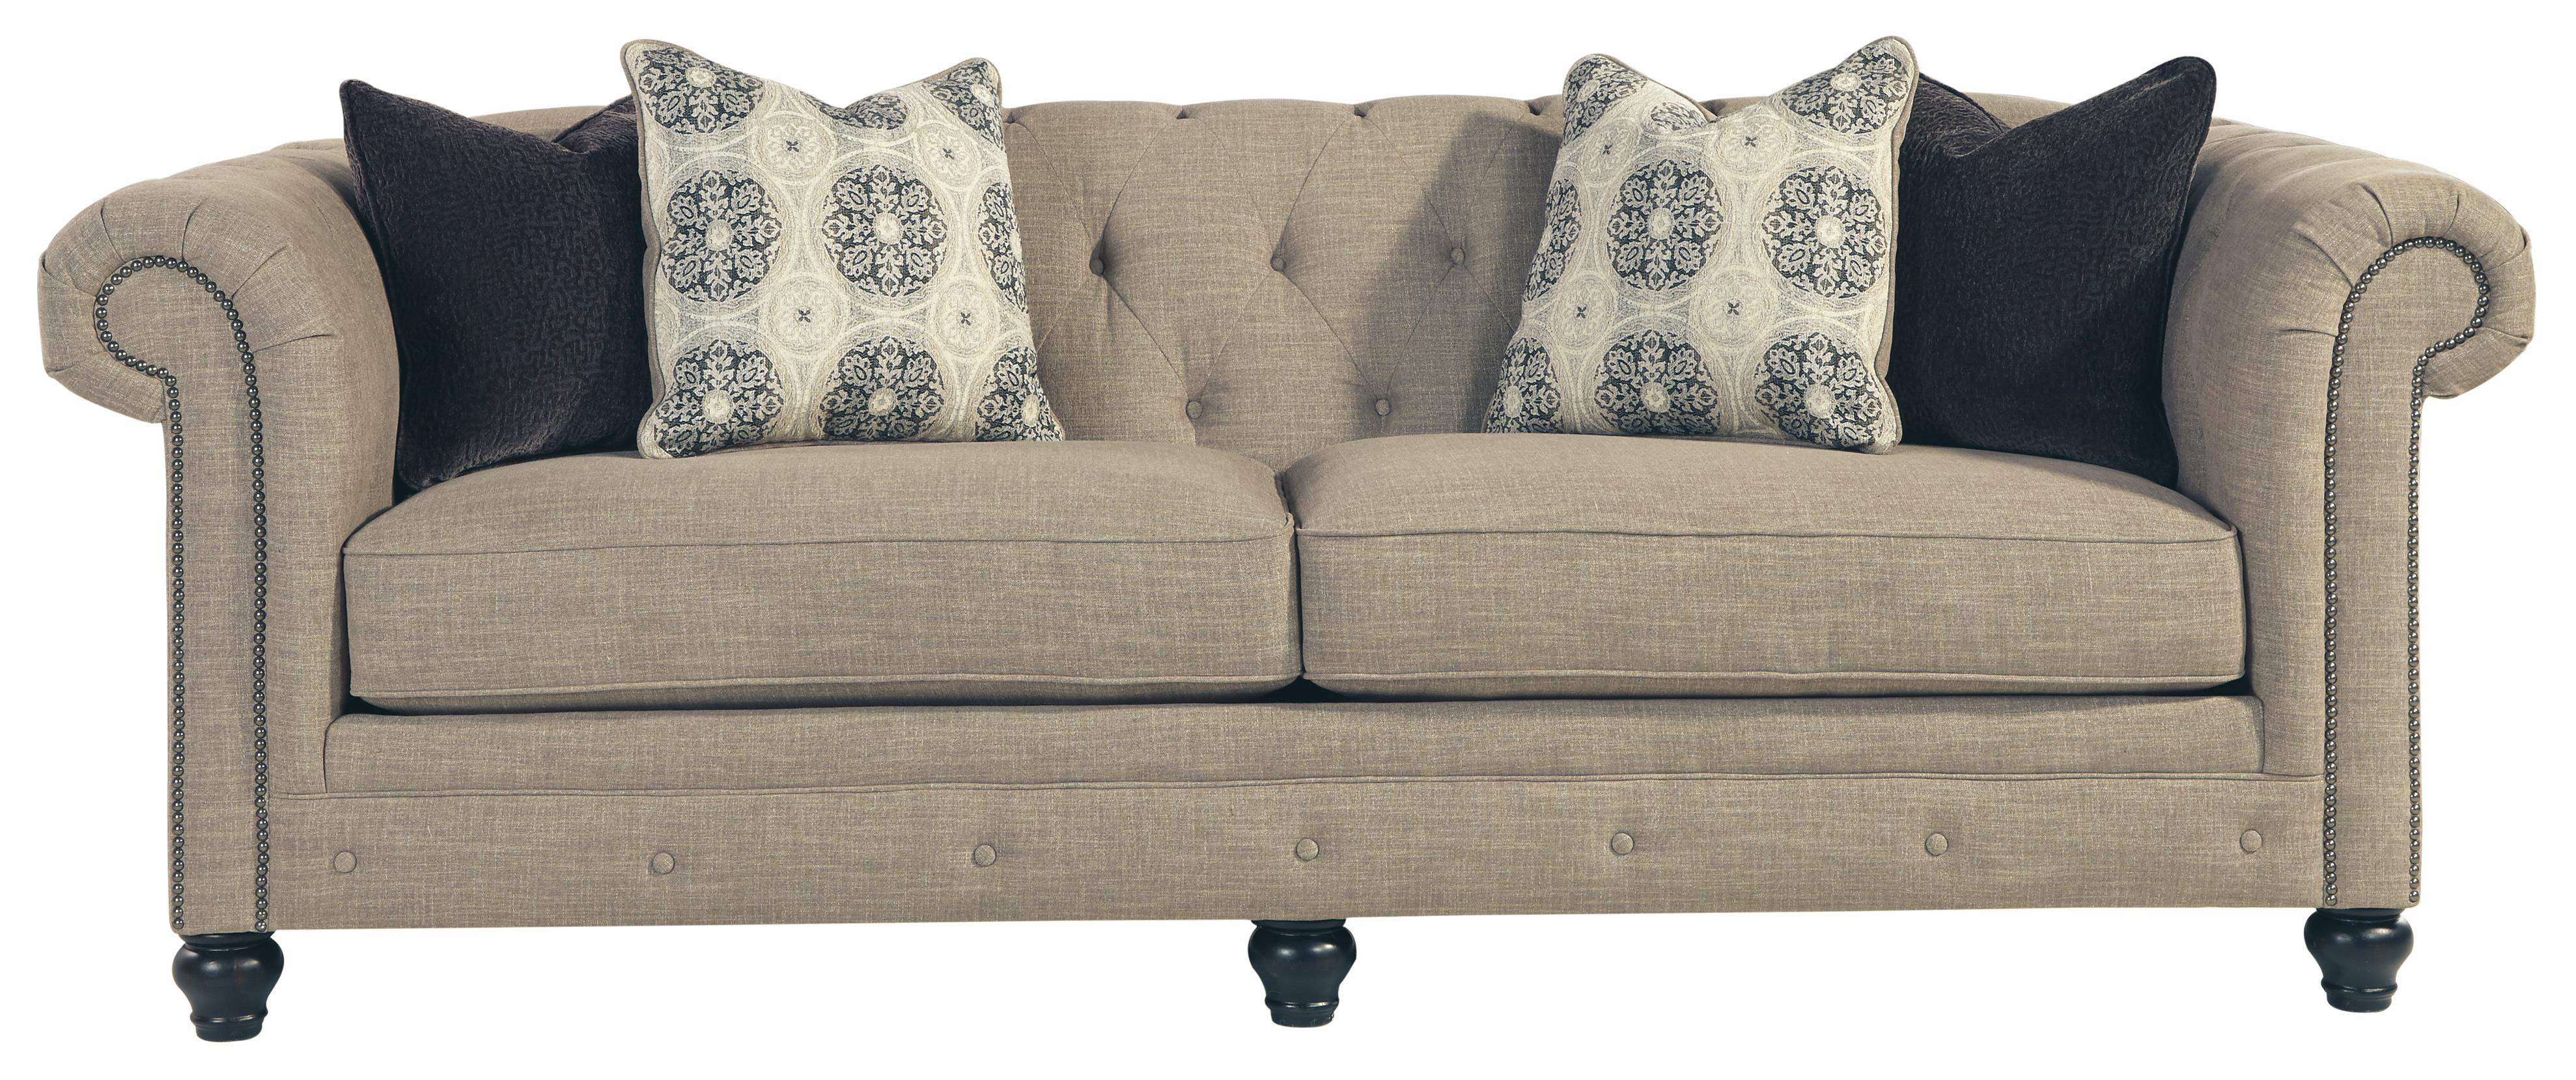 Benchcraft Azlyn Sofa - Item Number: 9940238